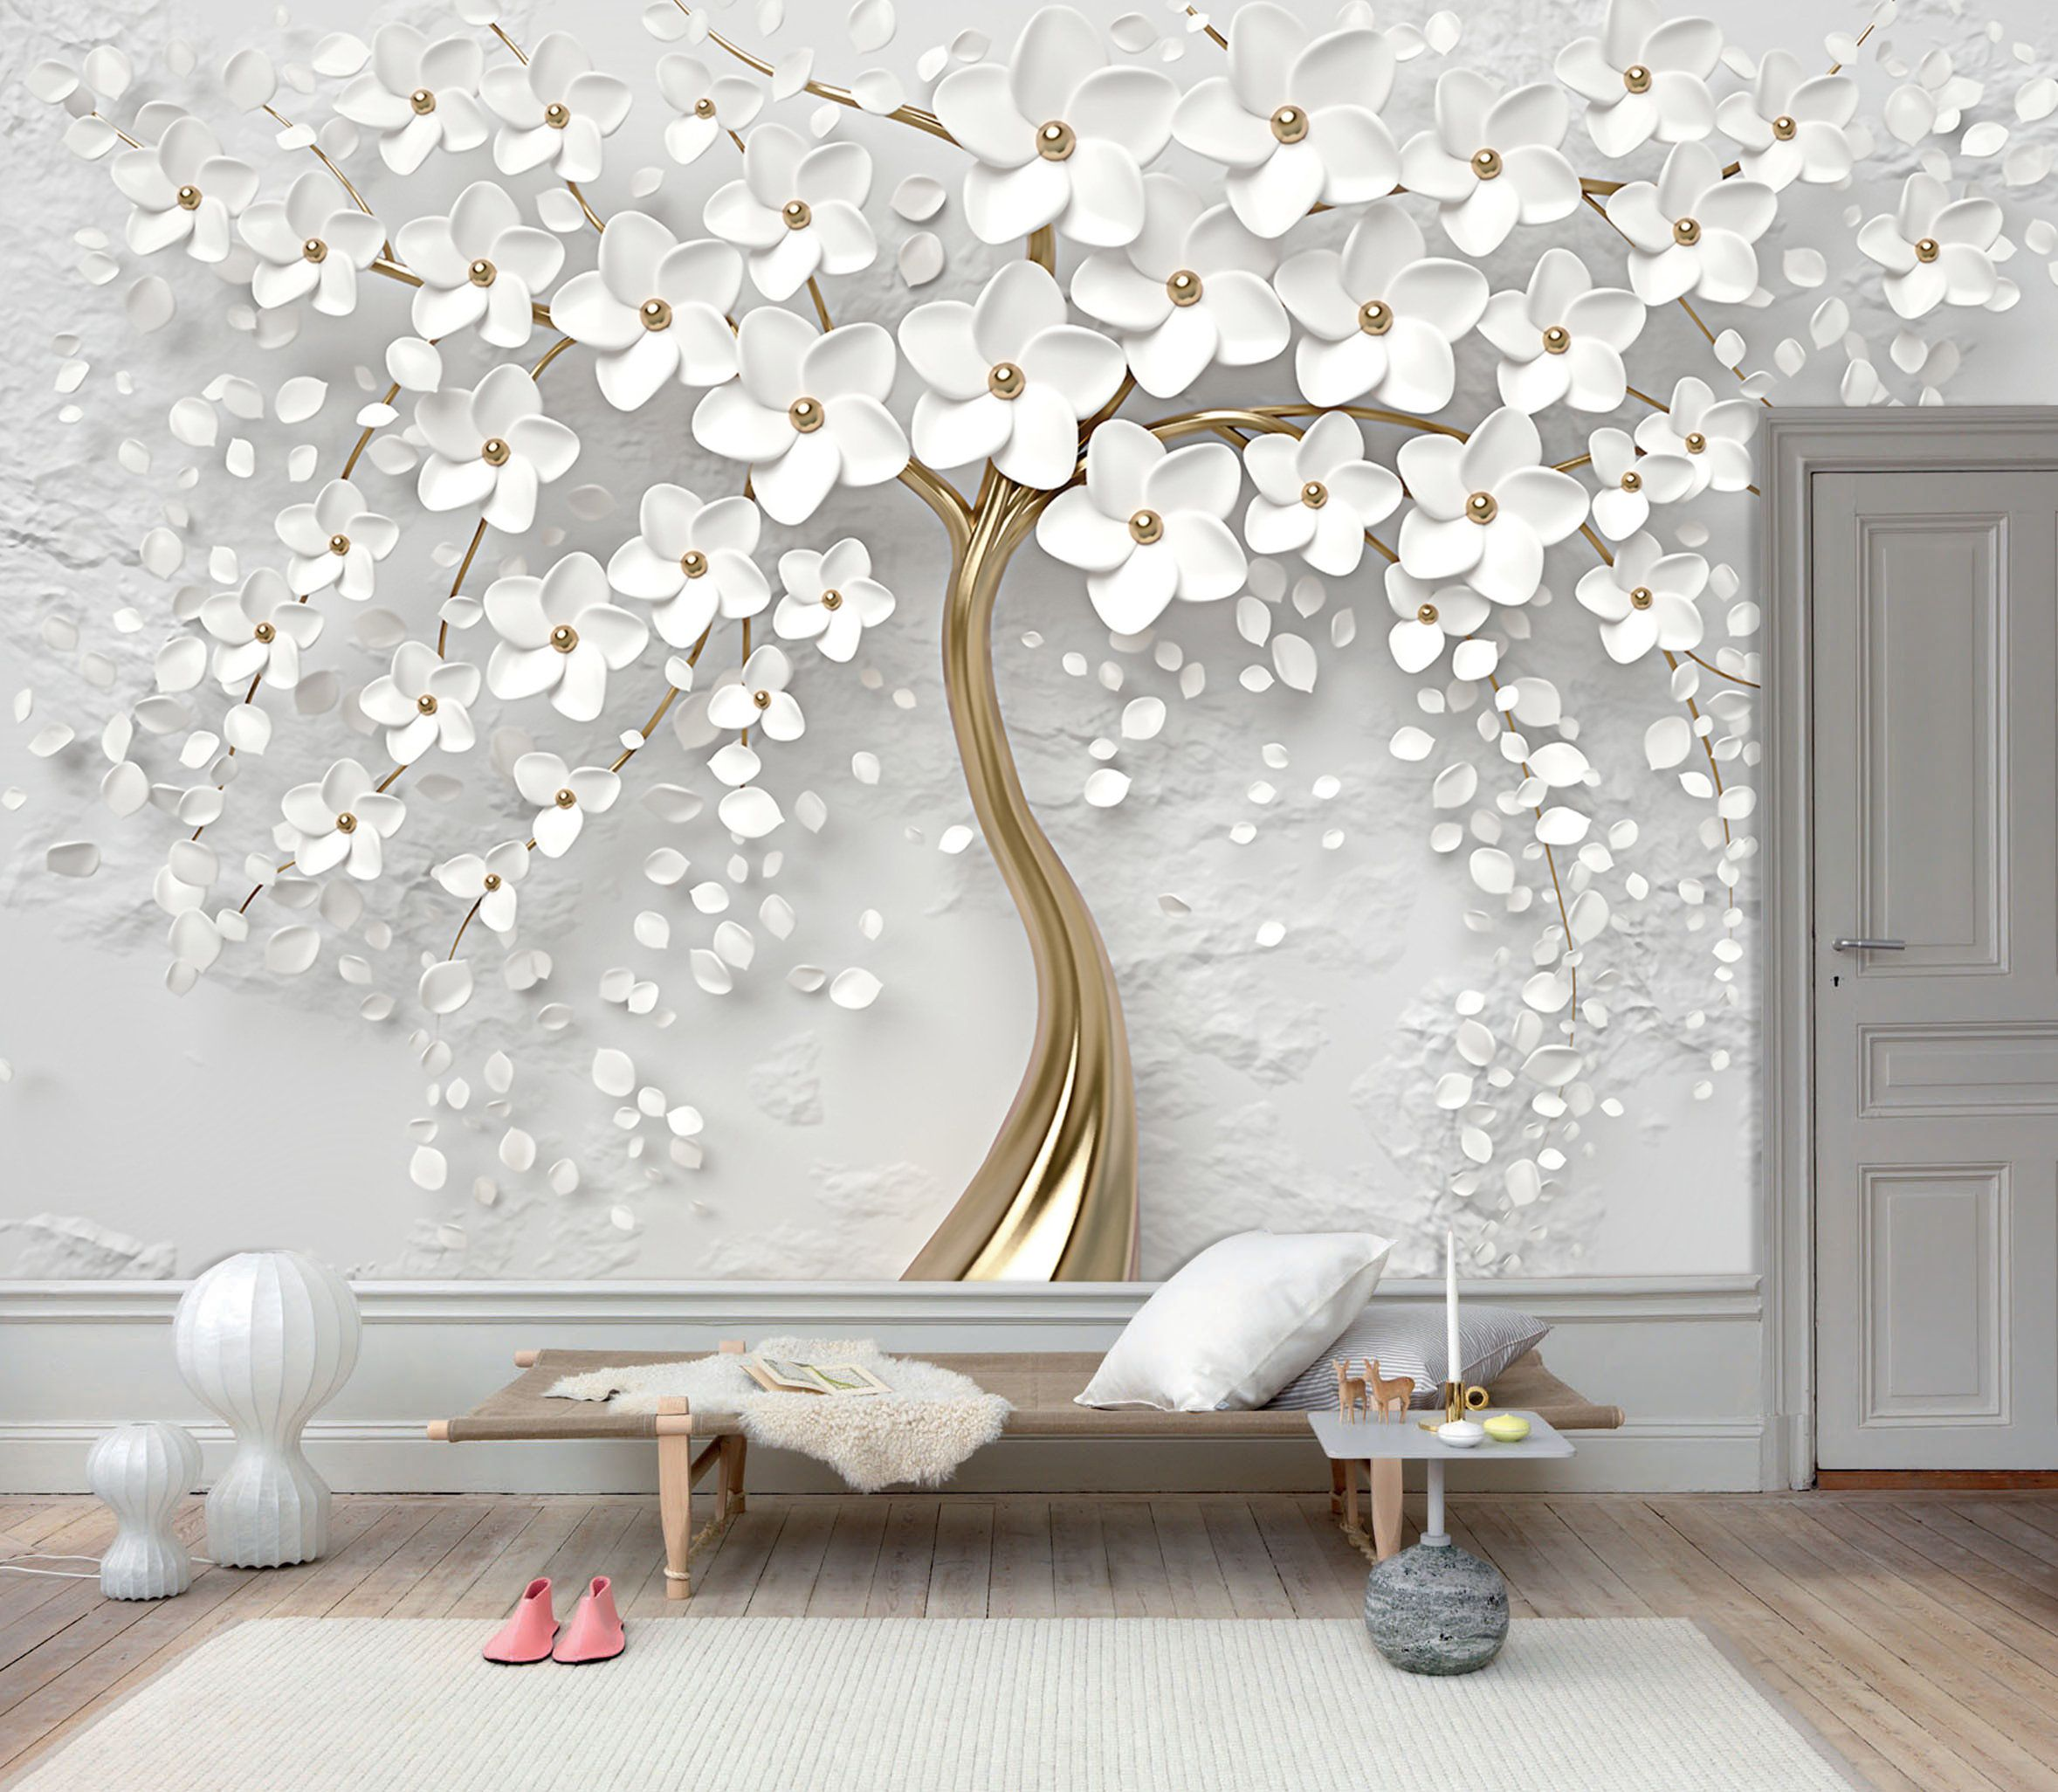 3D Gold Tree Floral, White 3D Floral Wall Mural, Wall Art ...